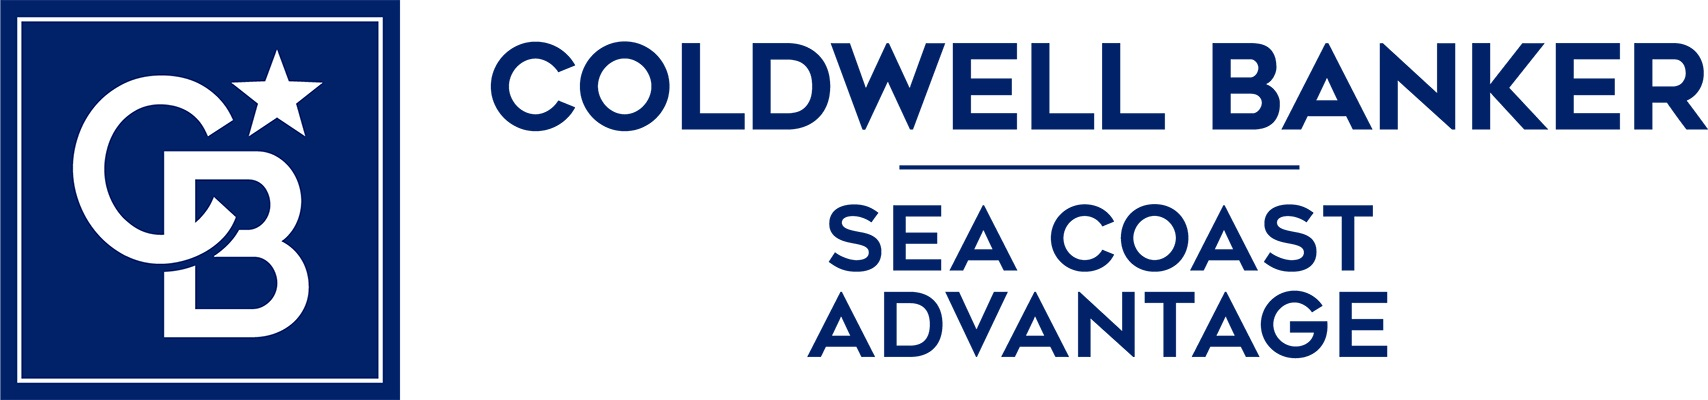 Sabrina Marshall - Coldwell Banker Sea Coast Advantage Realty Logo